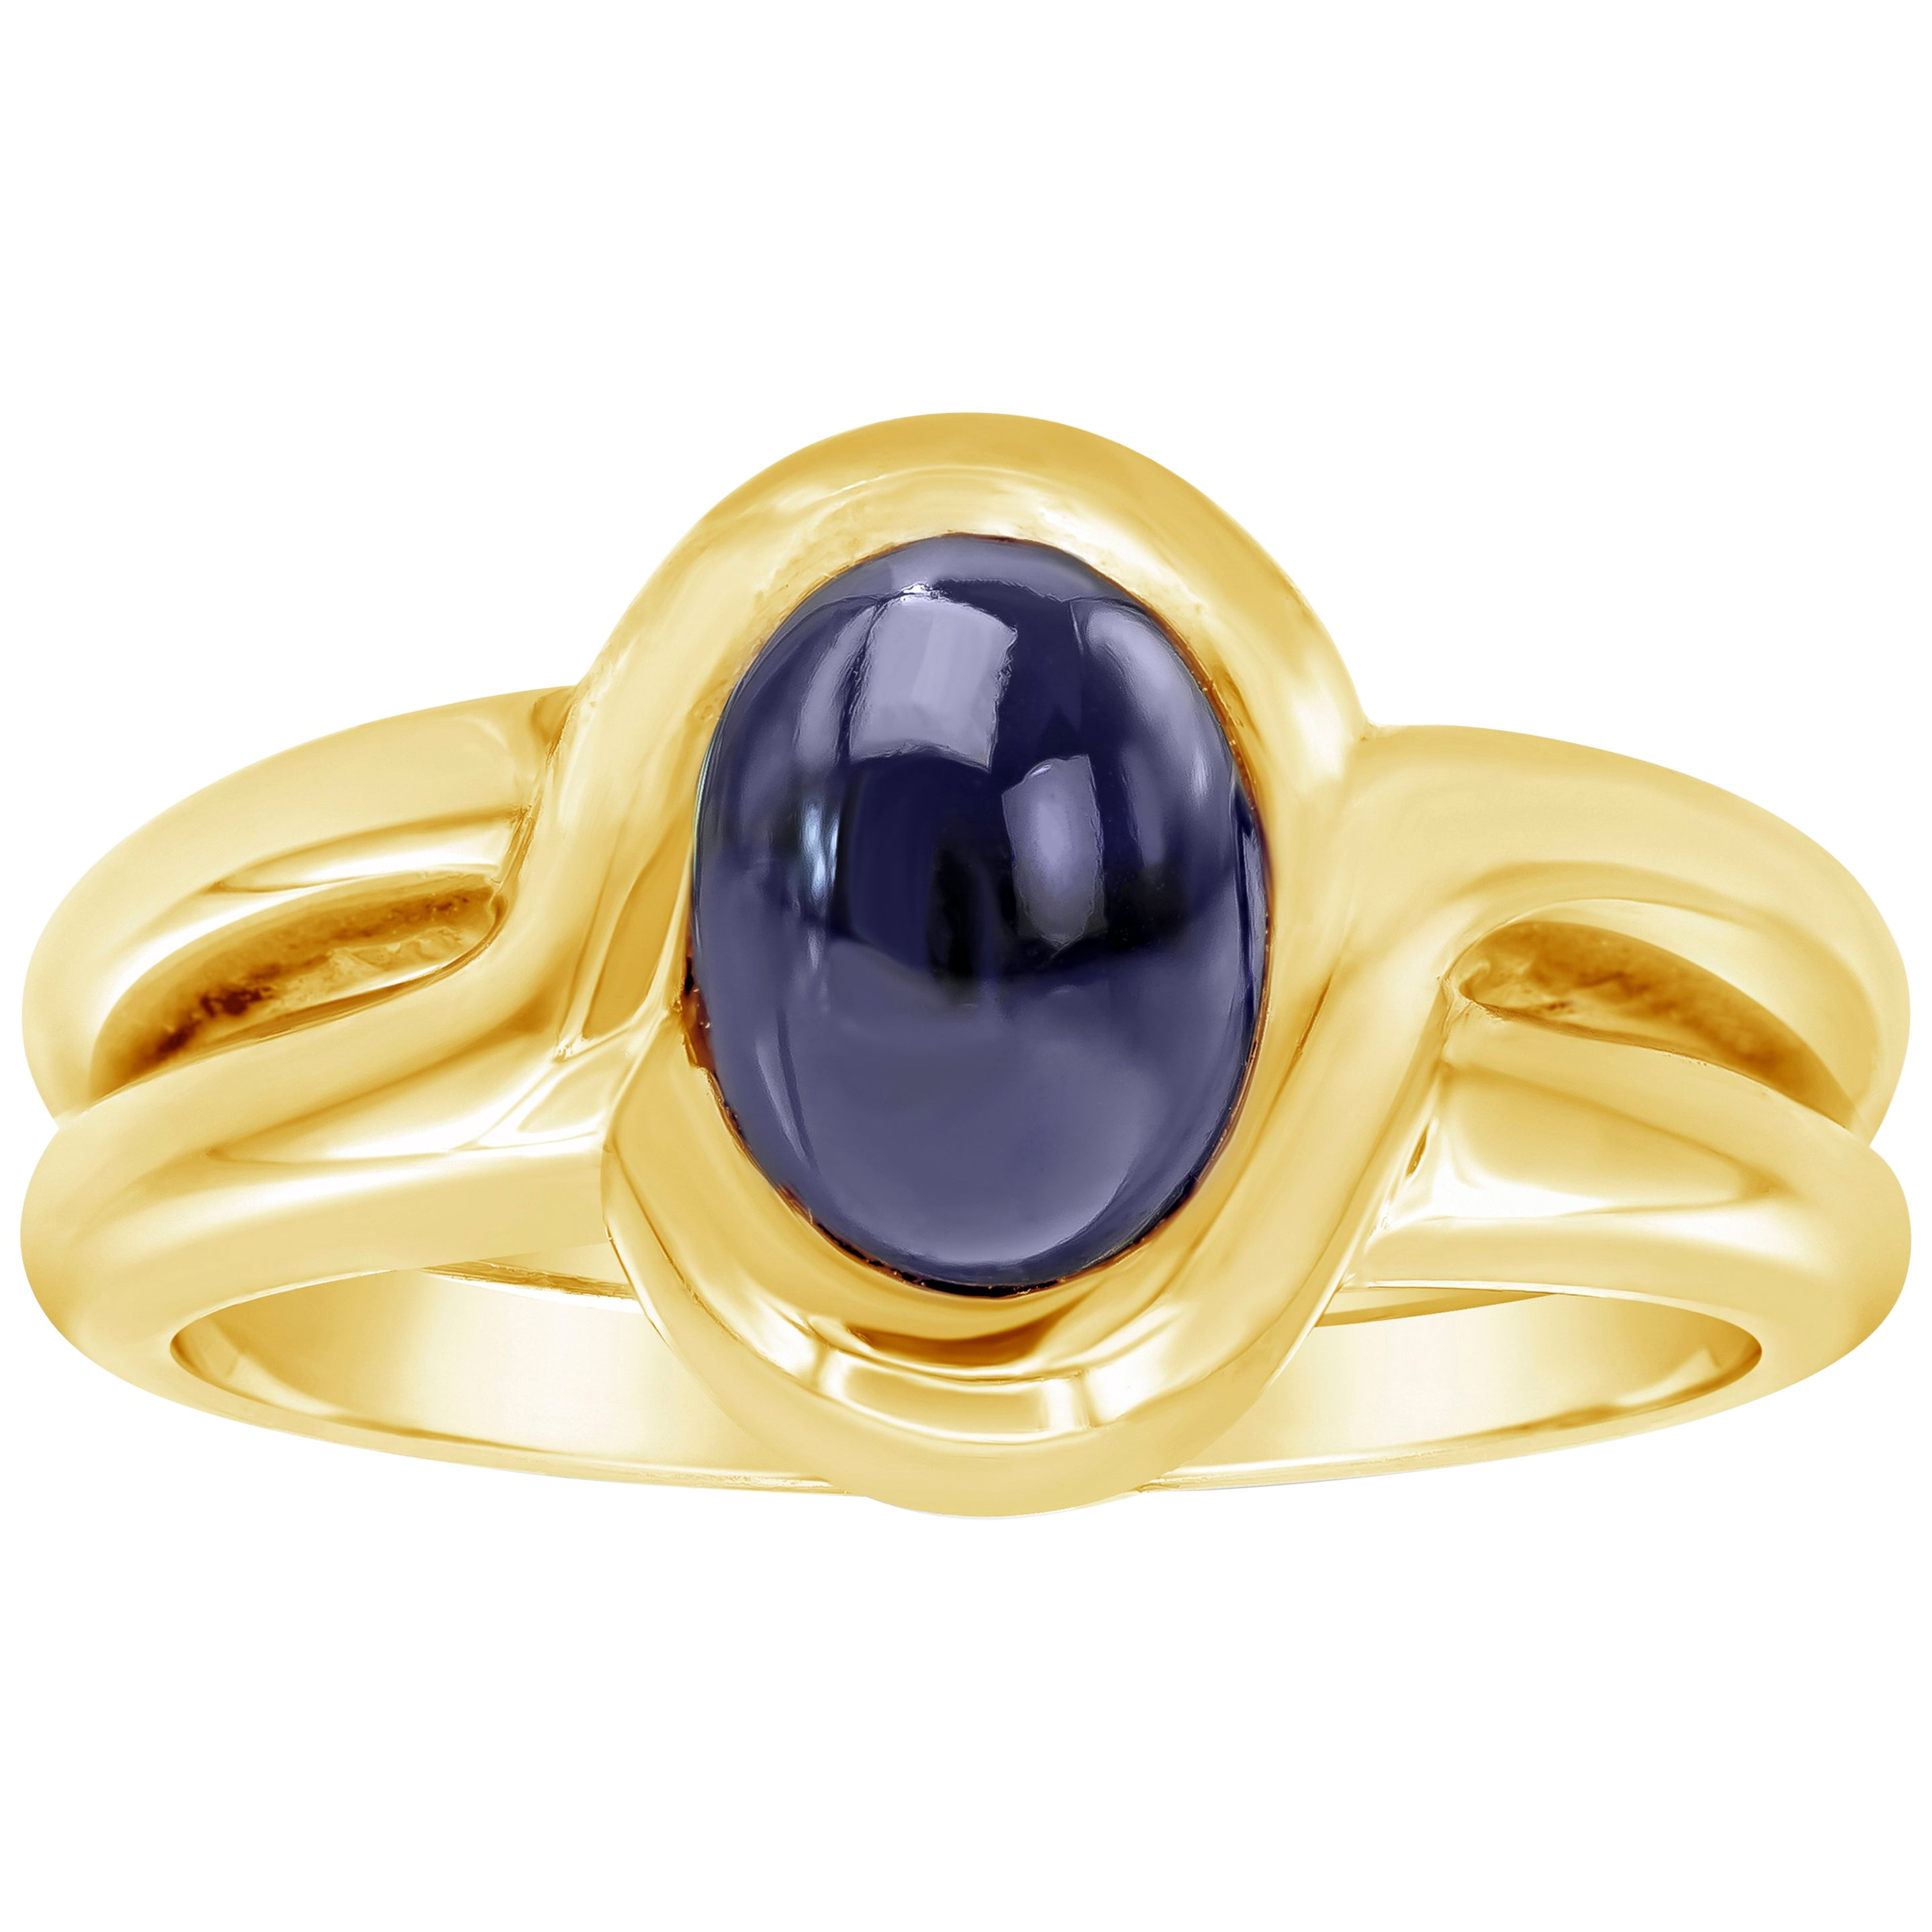 Oval Cut Cabochon Sapphire Yellow Gold Double Shank Ring